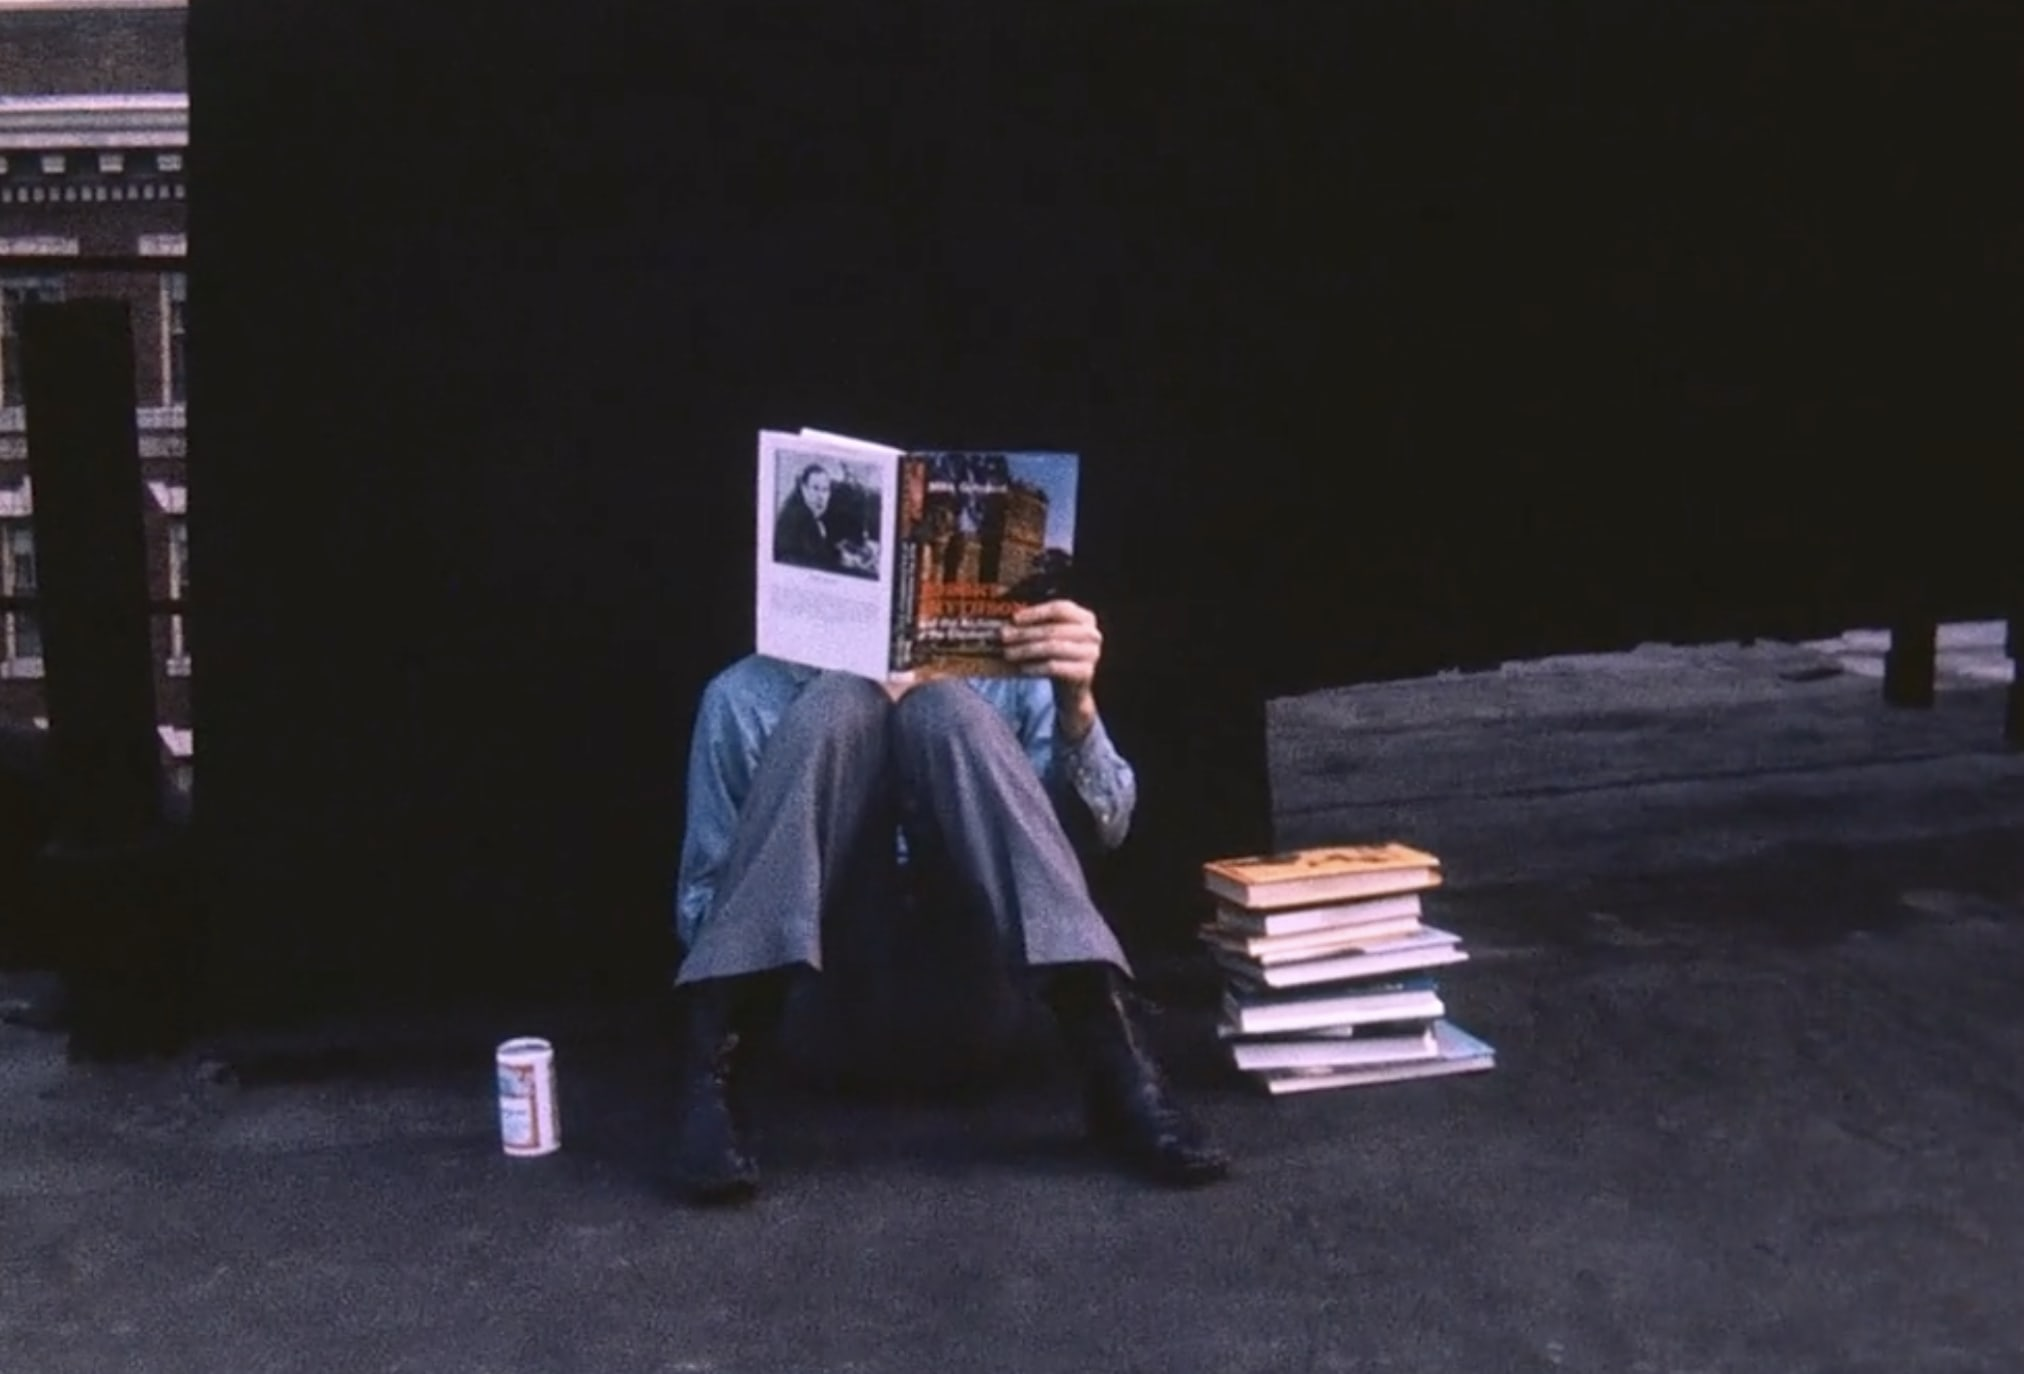 """A still from the film """"Bob with Books"""" of Robert Smithson reading books"""